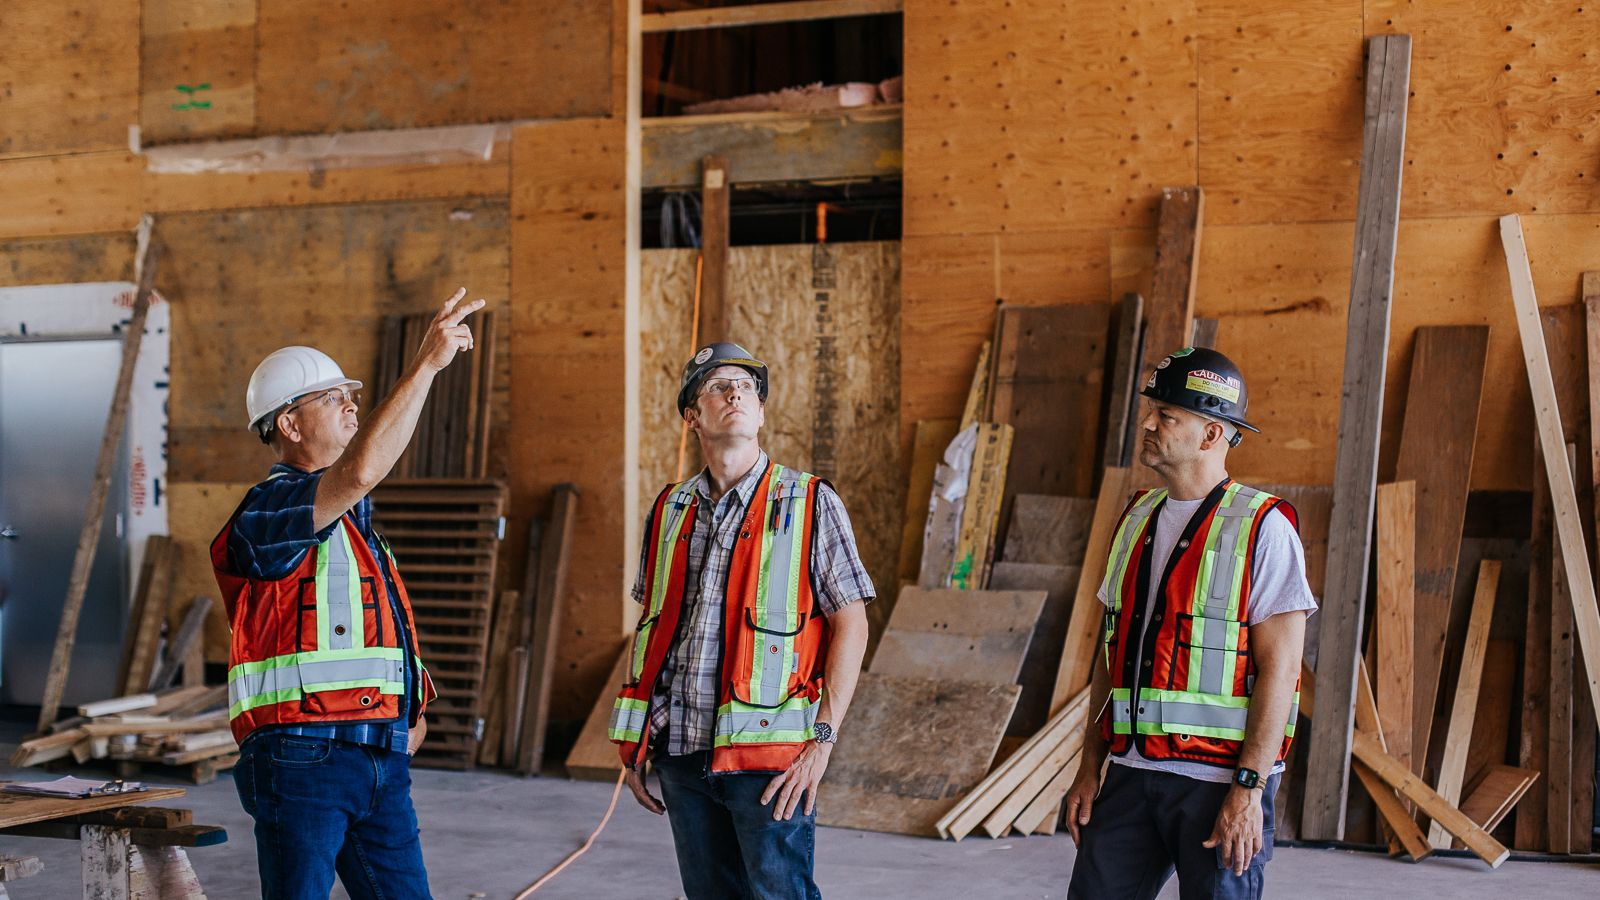 Three Kelco Drywall employees in safety hats and vests as they inspect a drywall installation job by Kelco Drywall.